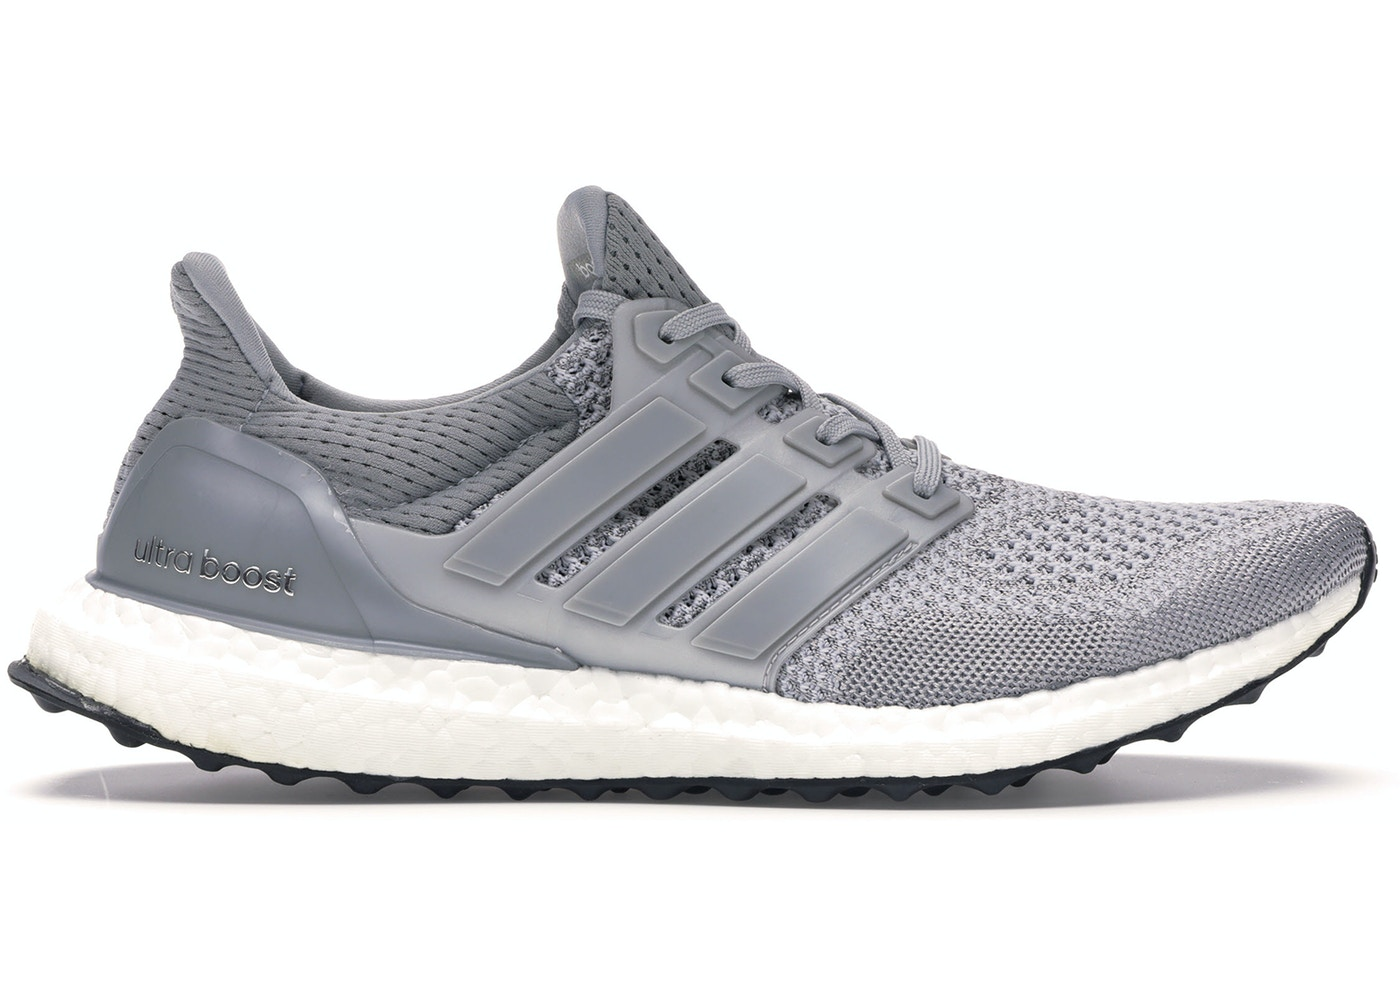 reputable site d2c5a aed2f adidas Ultra Boost 1.0 Silver Metallic Grey - S77517